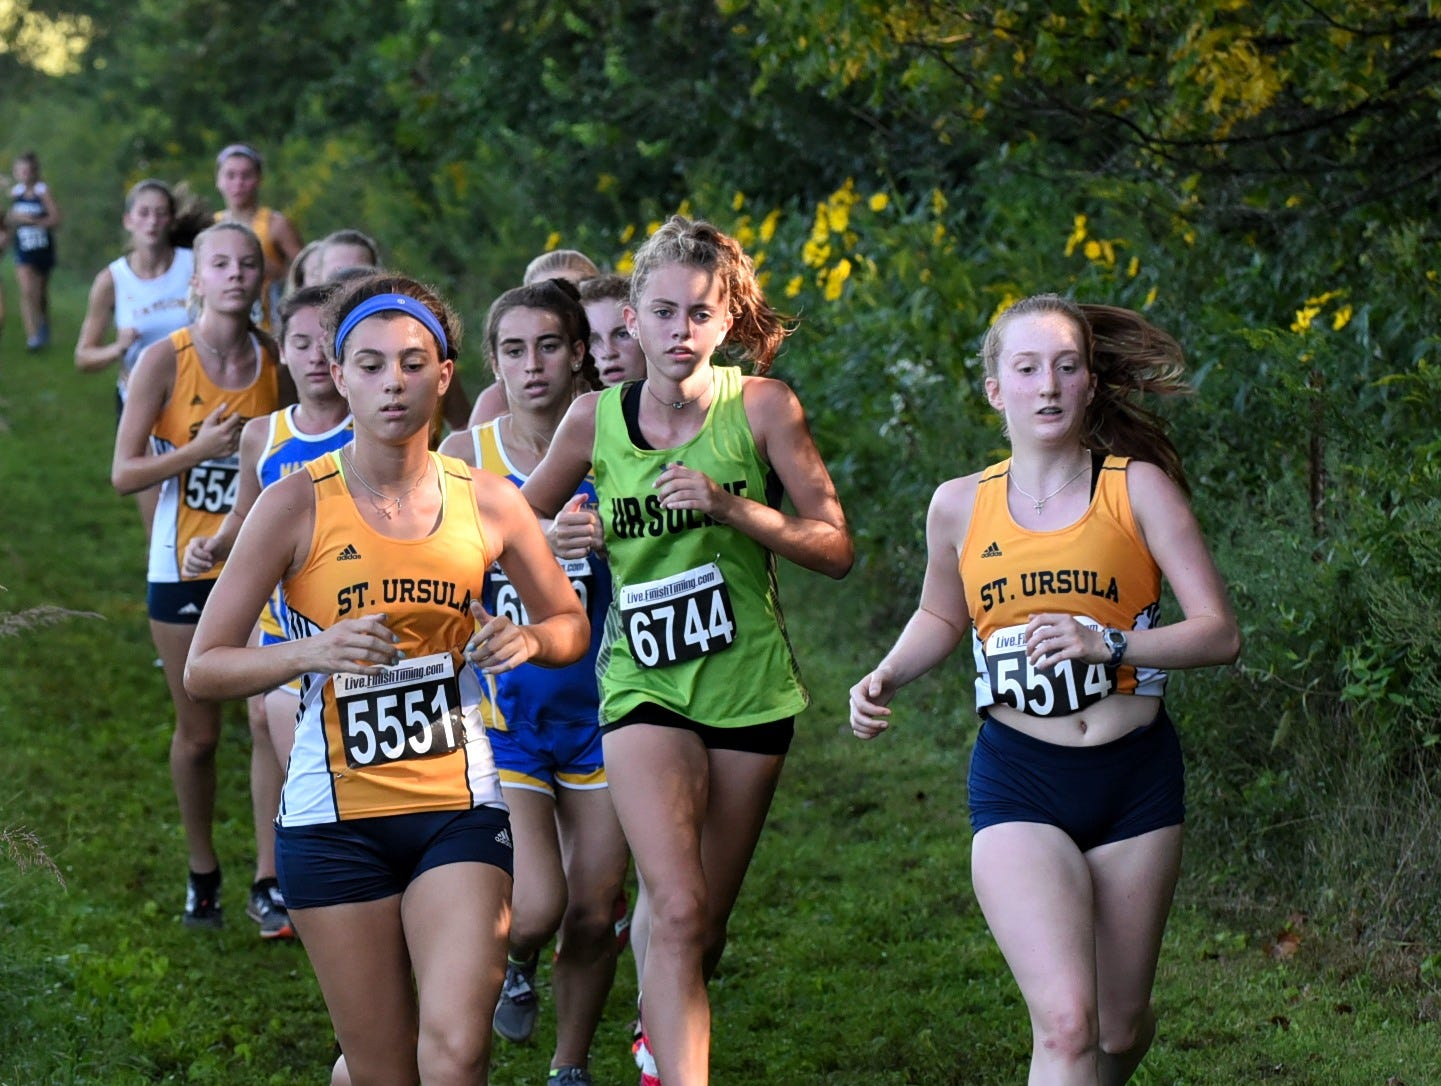 Josie Podoto and Deirde Carroll of St. Ursula and Leigha Timberlake of Ursuline lead a group of ladies down a back straight at the 2018 Milford Cross Country Invitational, Sept. 15, 2018.